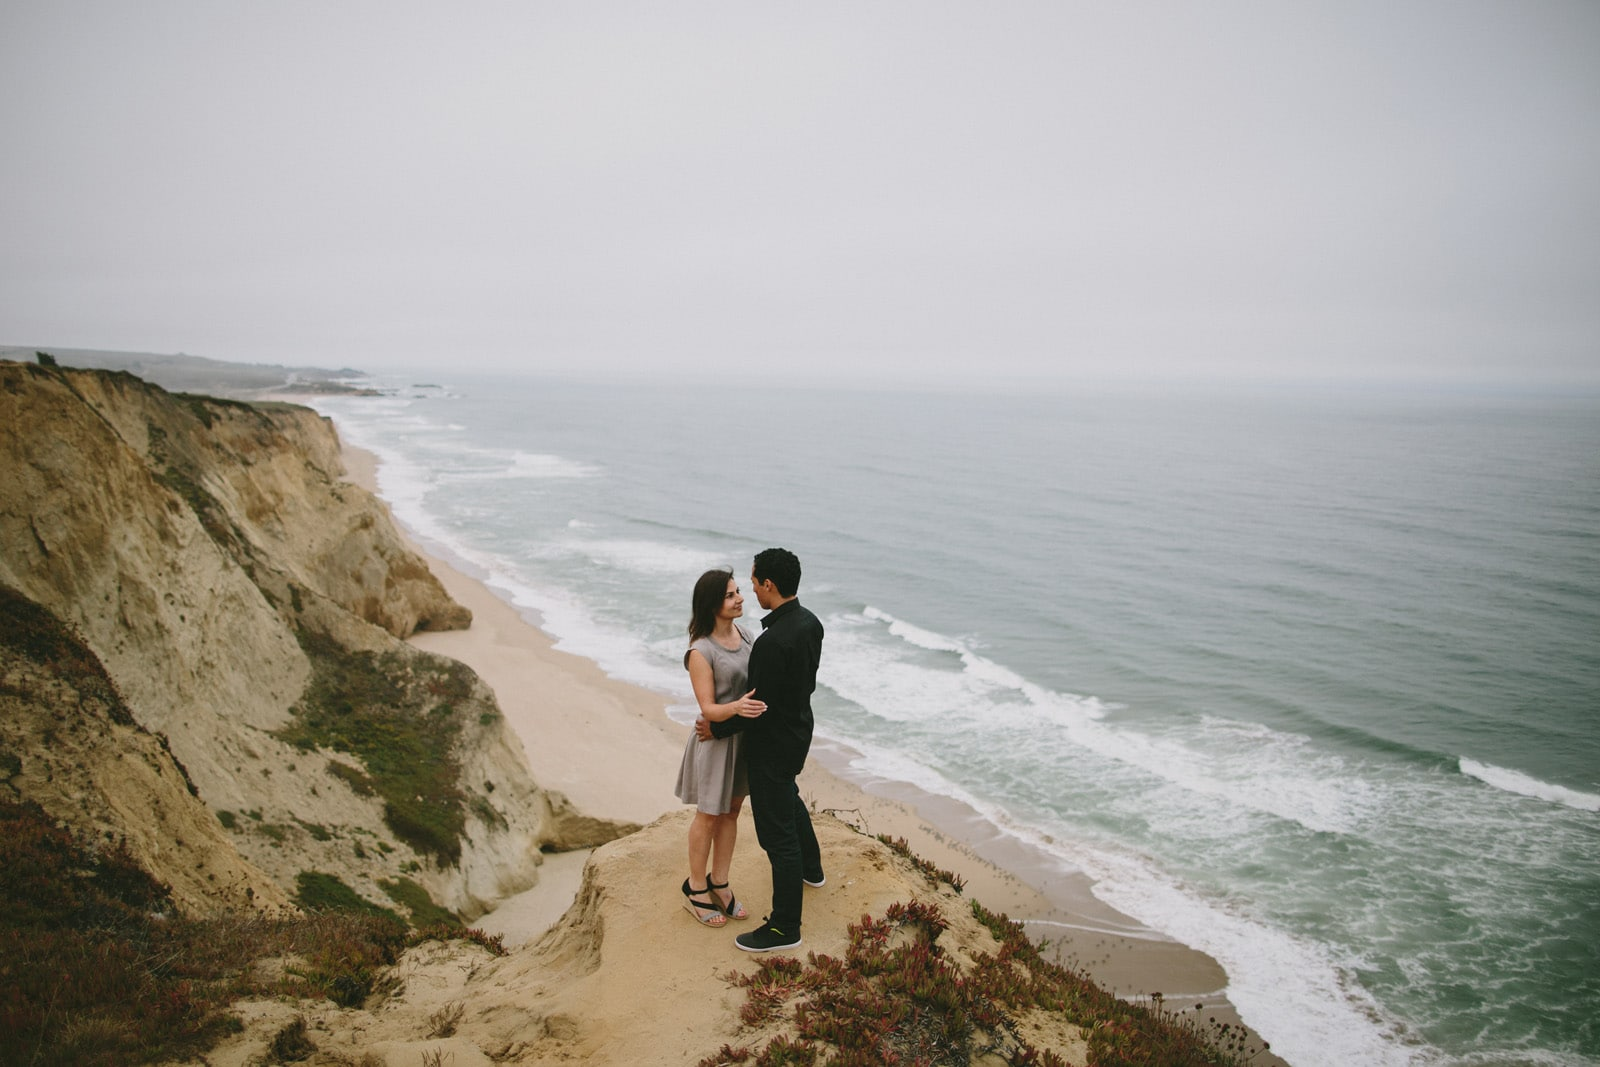 bay_area_wedding_photographer_pescadero_wedding_0010